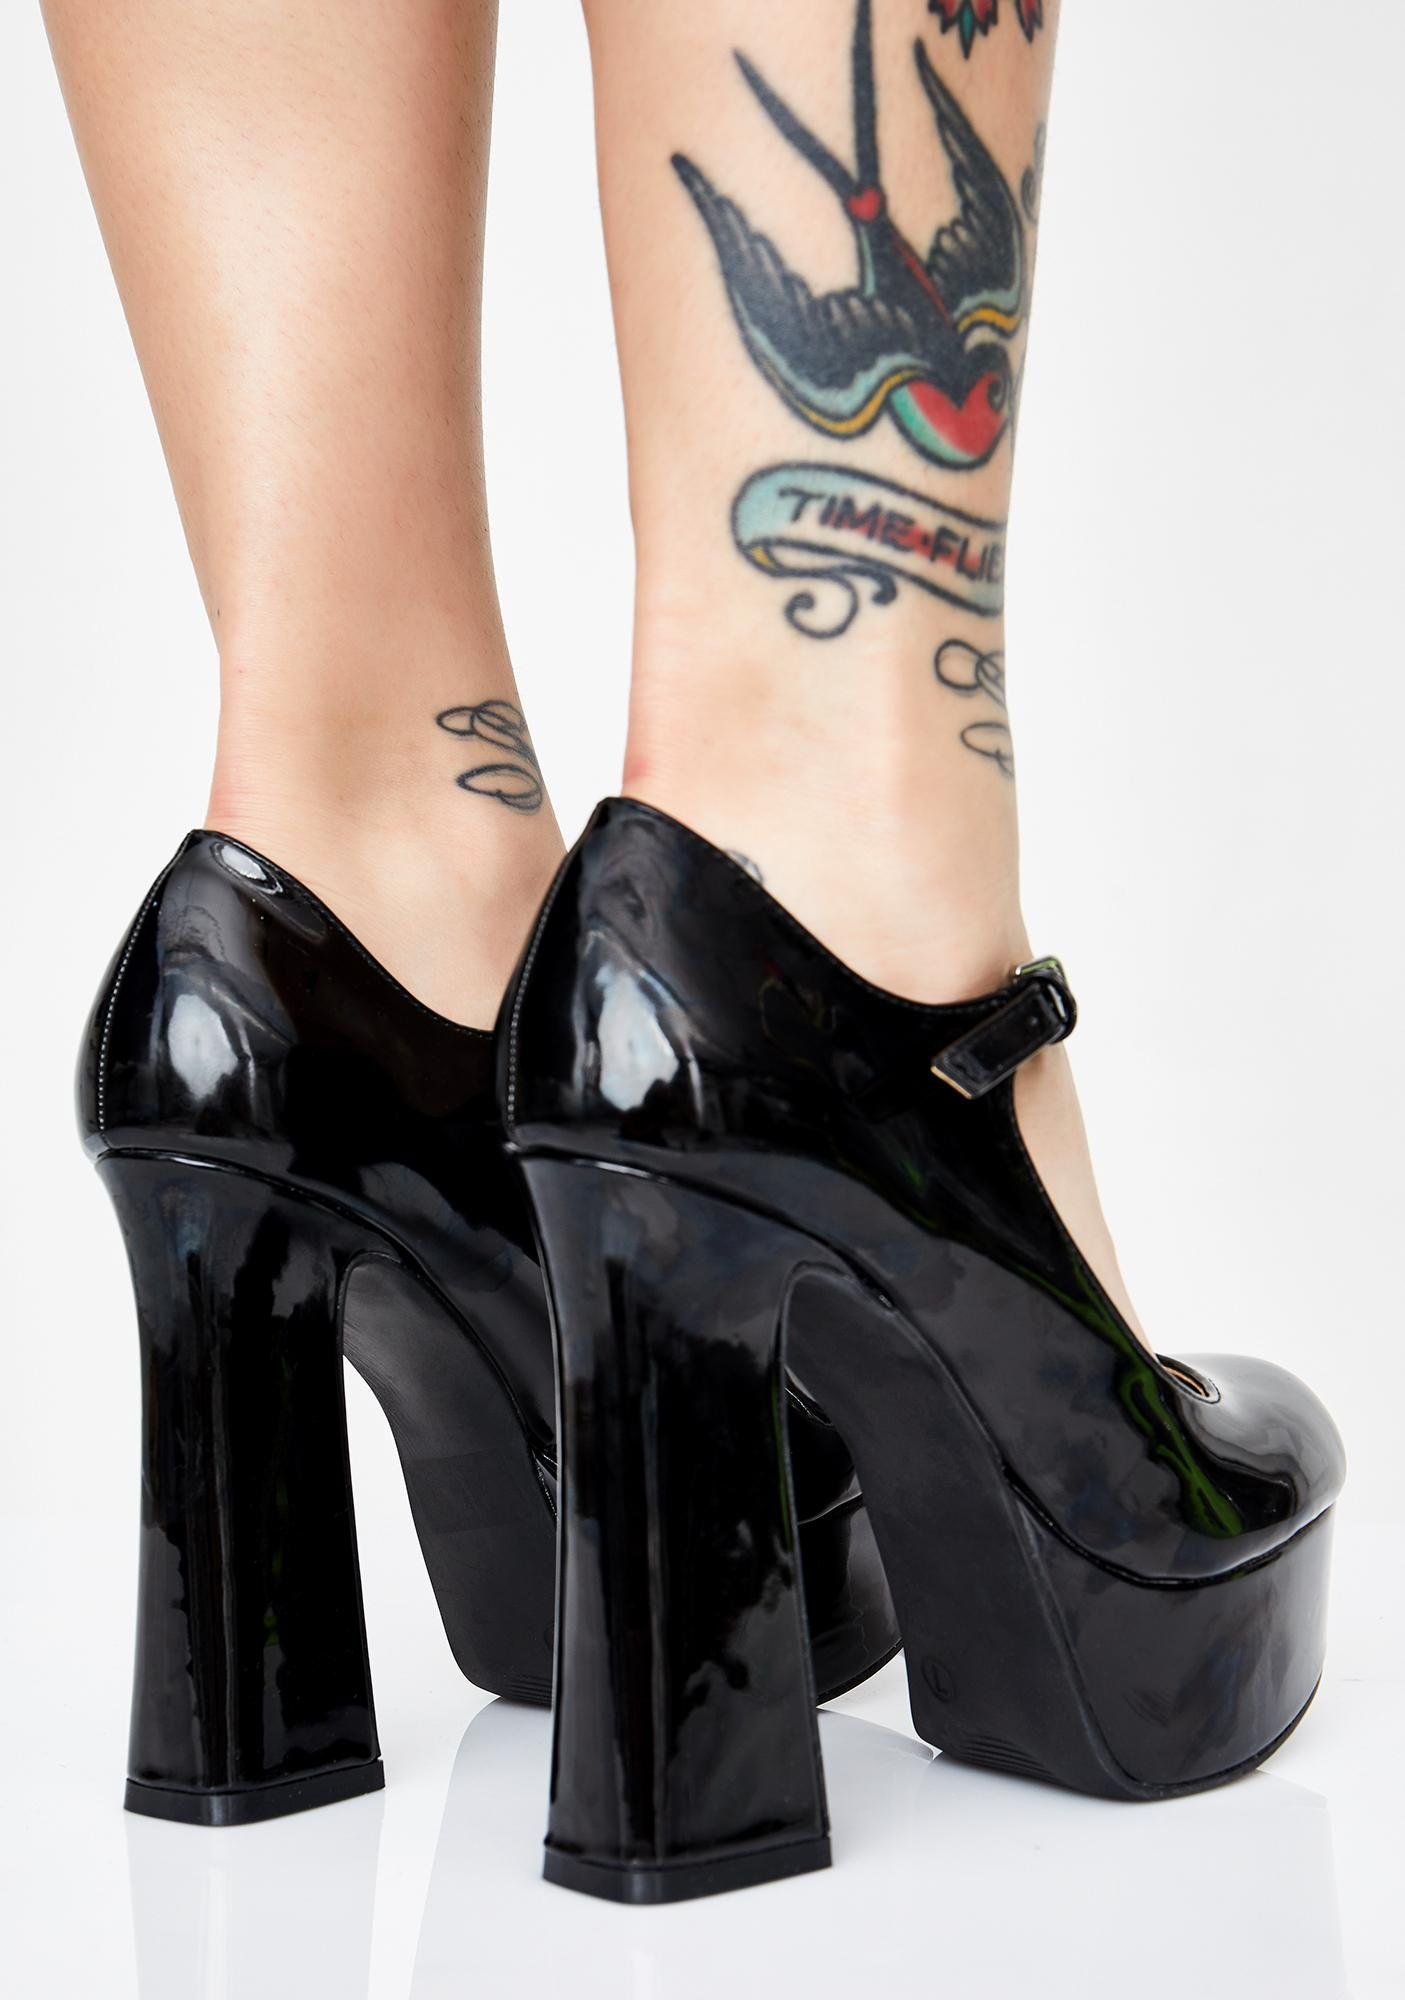 278925d5f38 Honey Divine Platform Mary Janes in 2019 | Shoes, glorious shoes ...